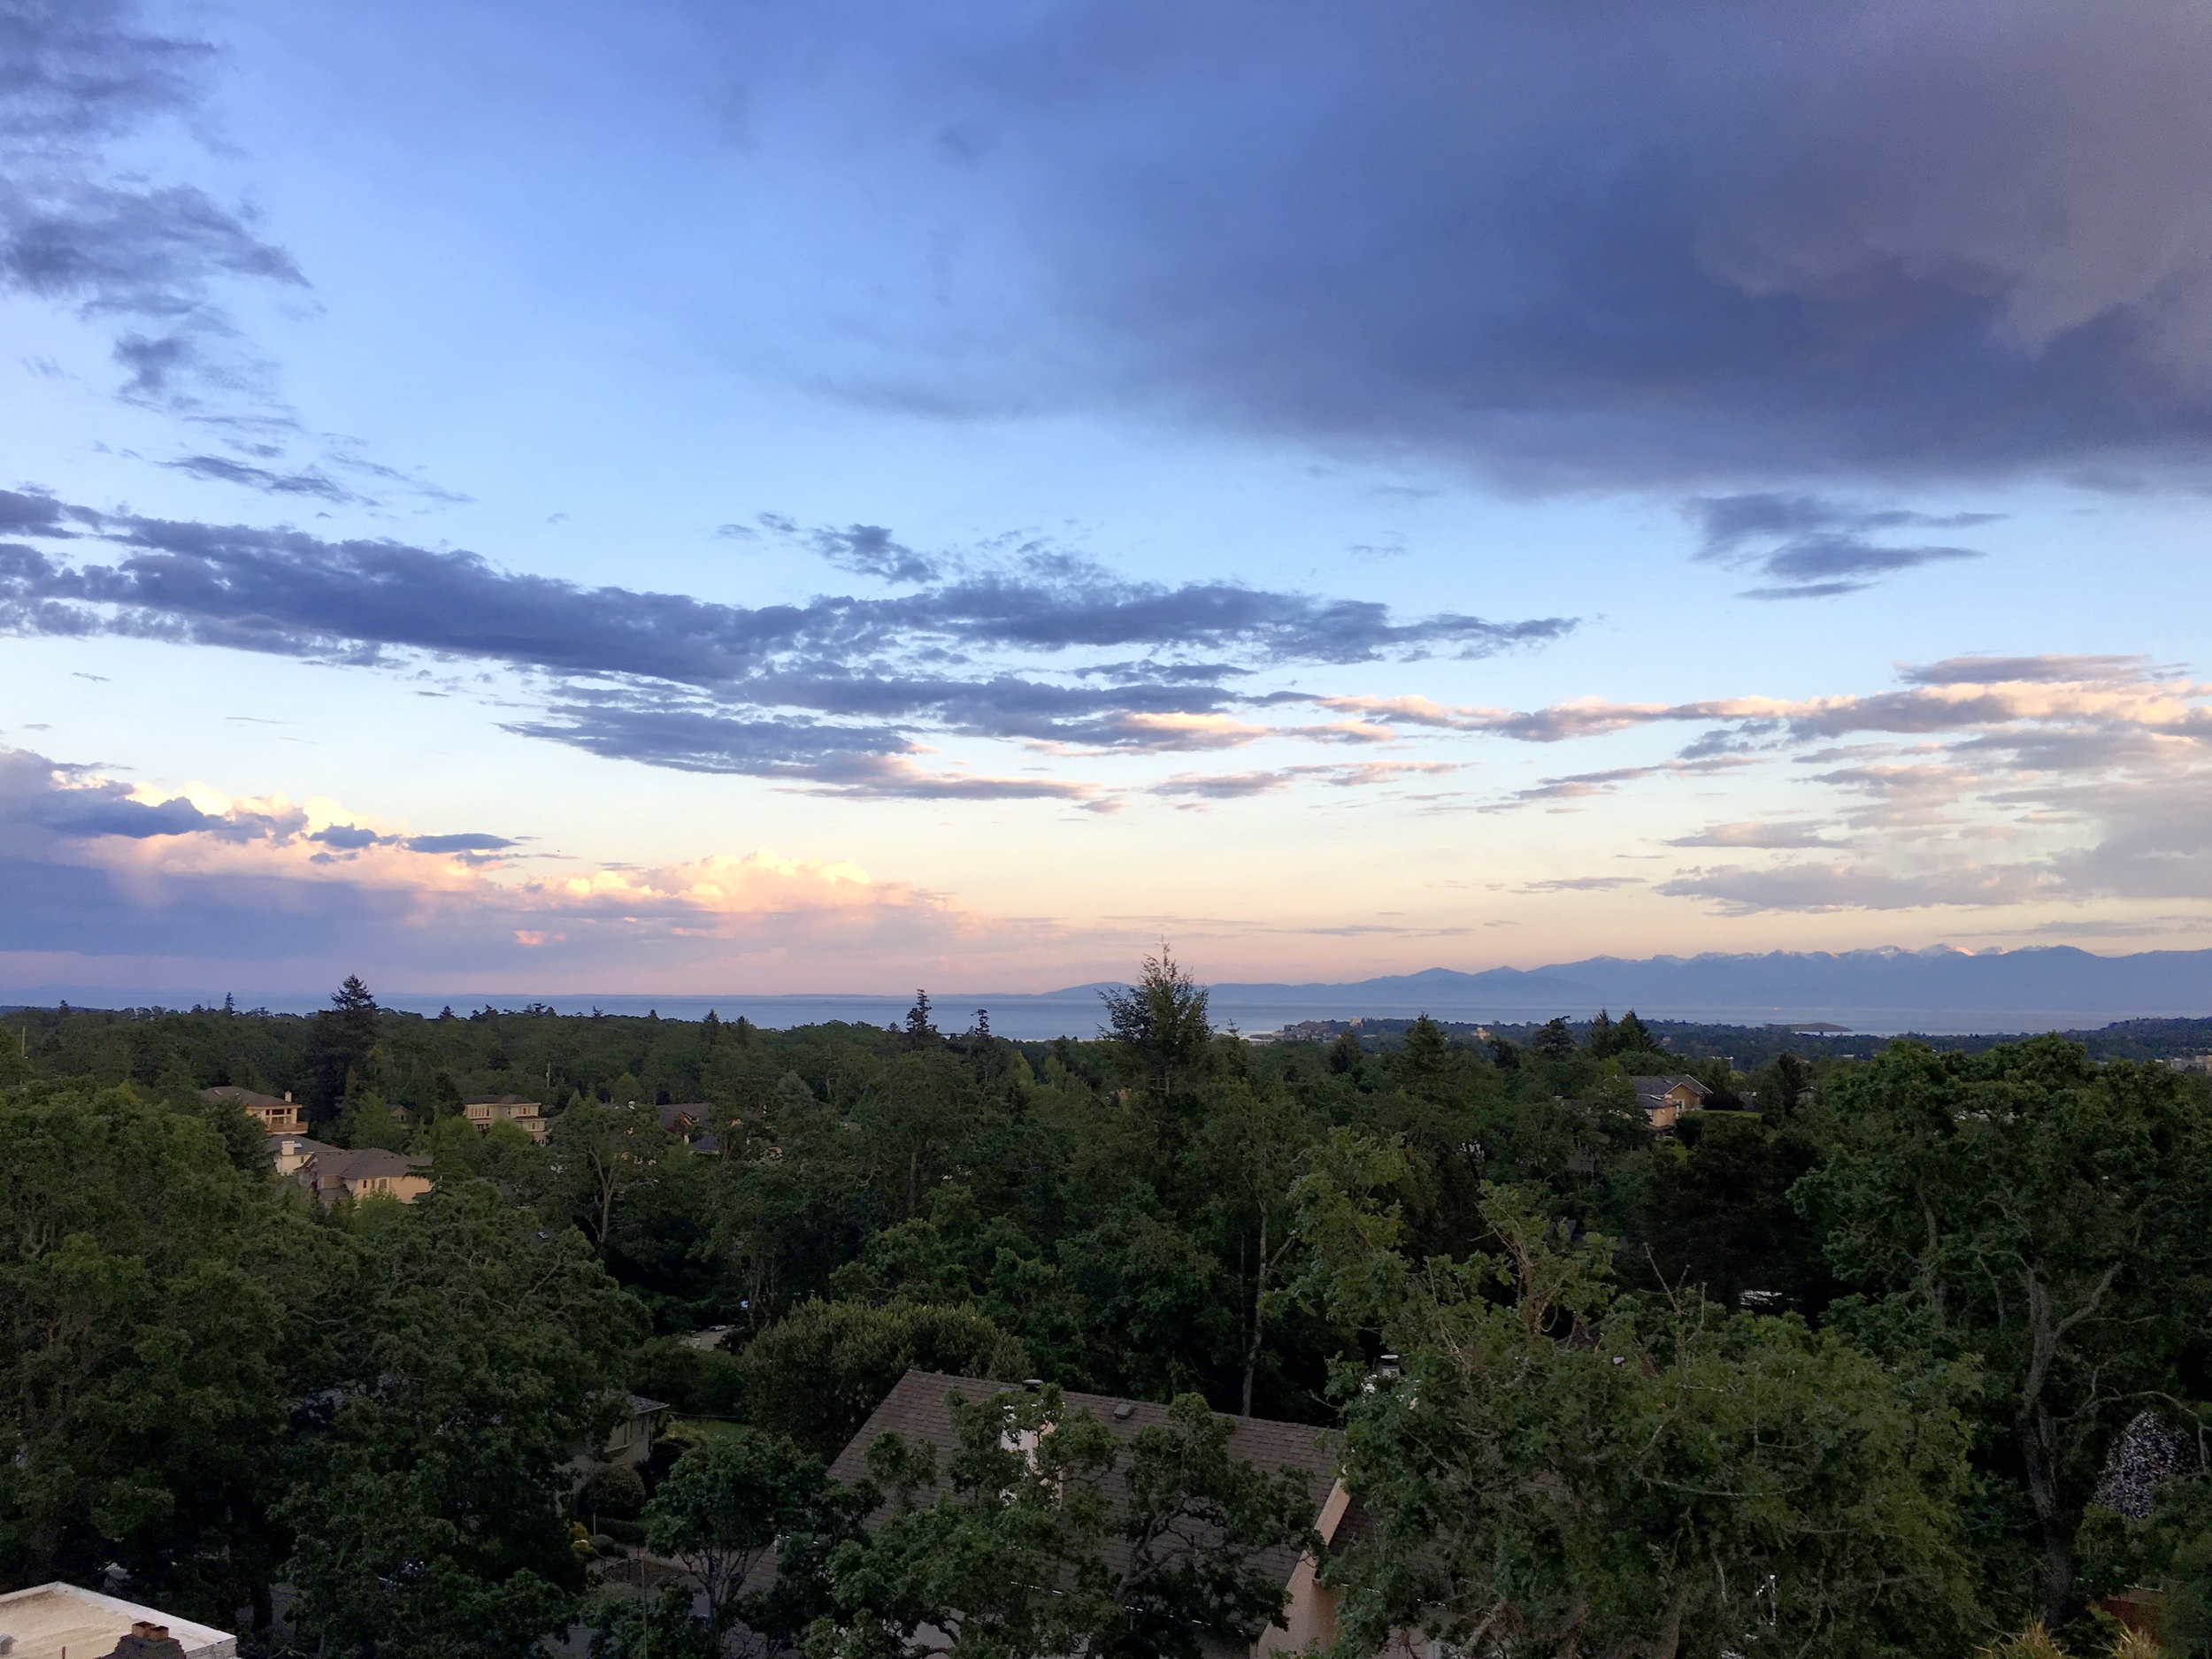 View from Troy's Balcony in Victoria looking across the Strait of Juan de Fuca,South towards the Olympic Mountain Range  Photo:Zach Husted